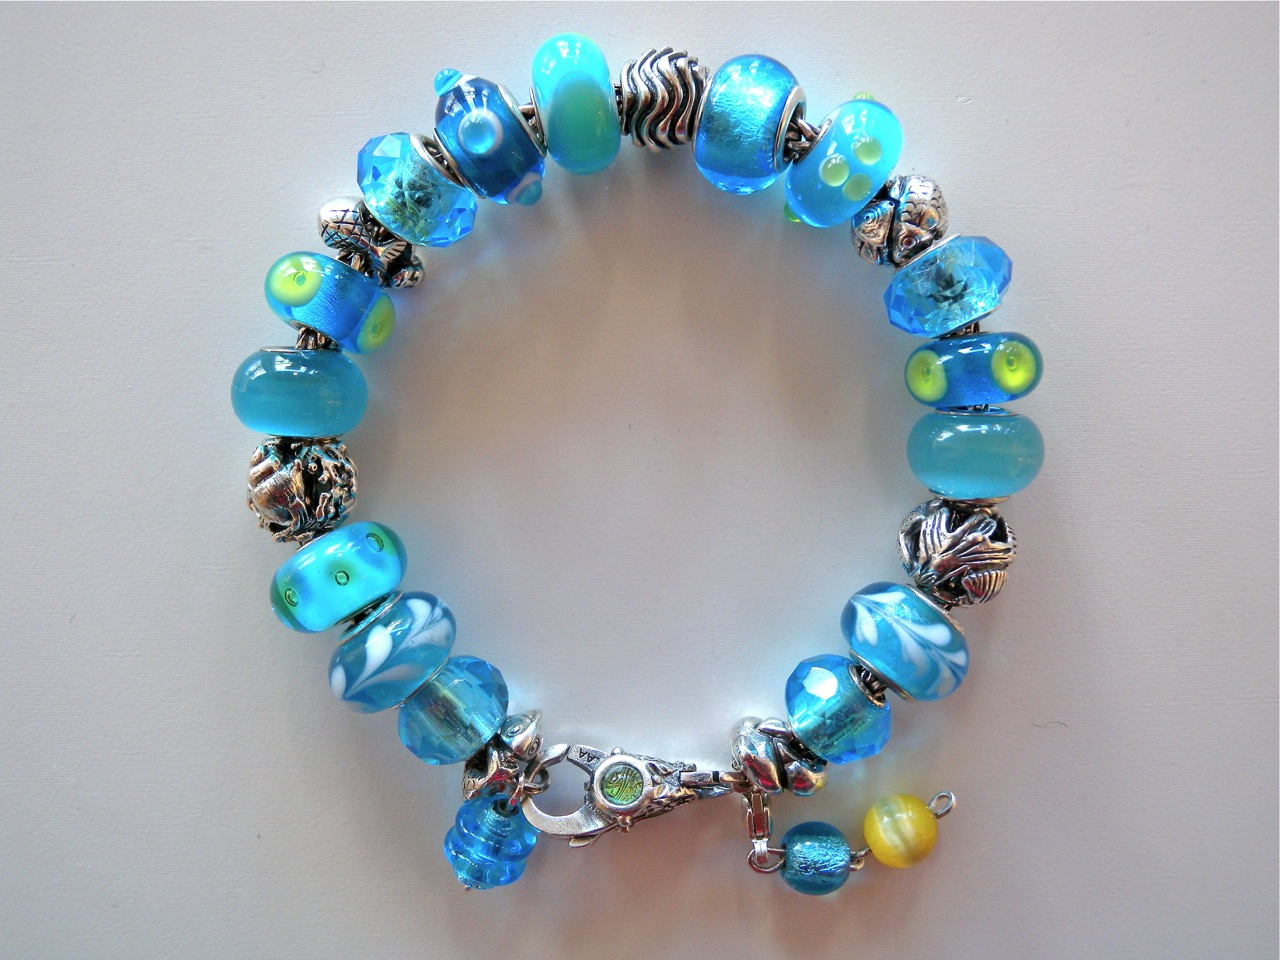 Water Trollbeads furthermore Kirtan Nachos And Wine Oh My moreover Music And Creativity further Choreography Shines In Forestburghs Fame in addition J Cole Type Beat Deep Emotional Instrumental. on in a soulful mood